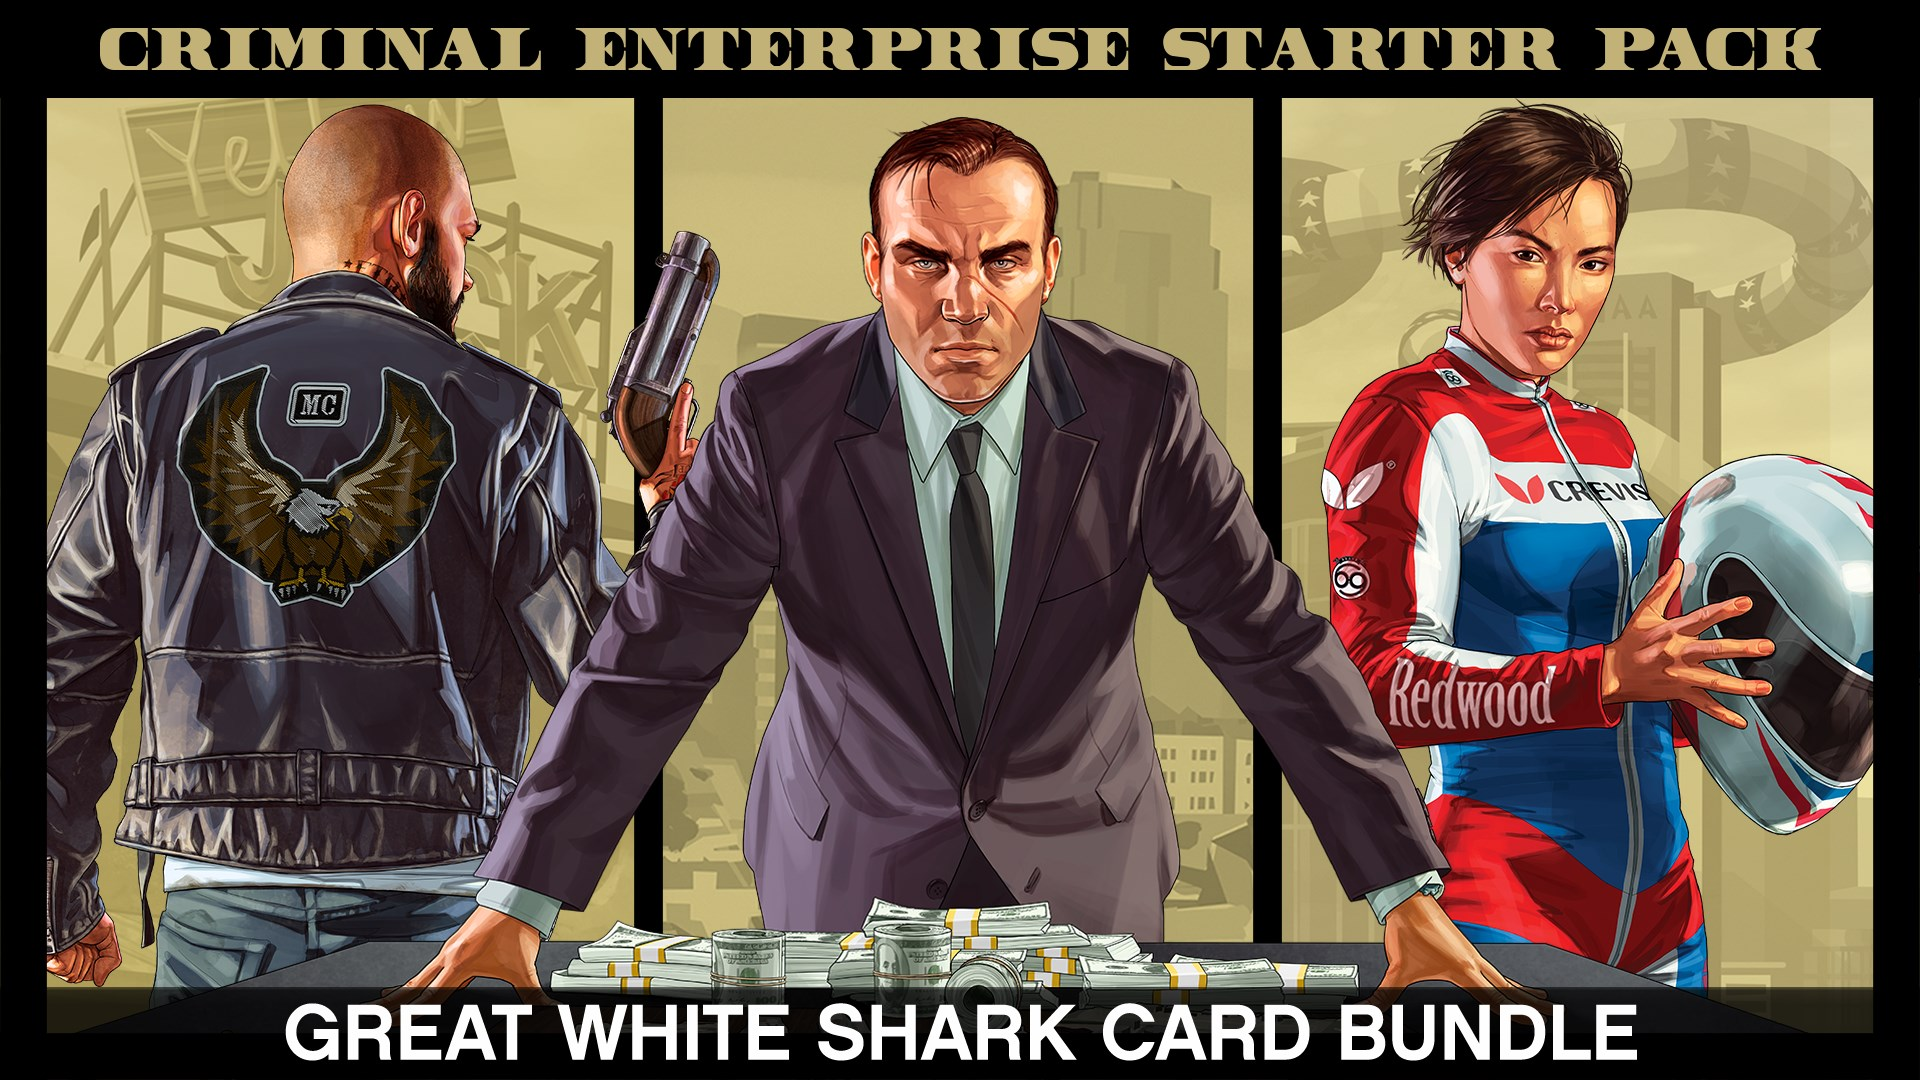 Pakke med Criminal Enterprise Starter Pack og Great White Shark Card